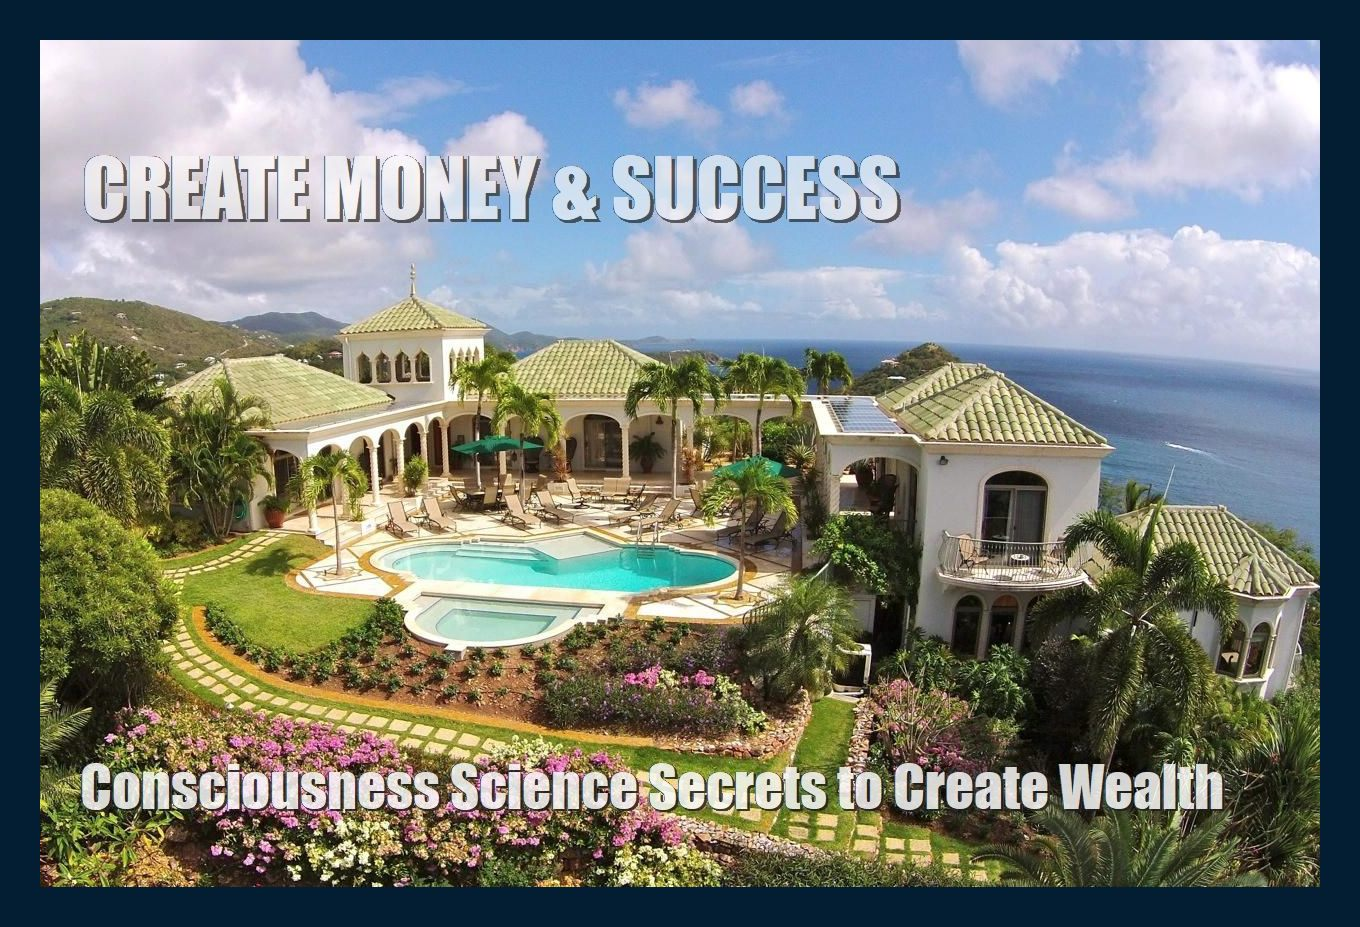 How-our-thoughts-create-success-house